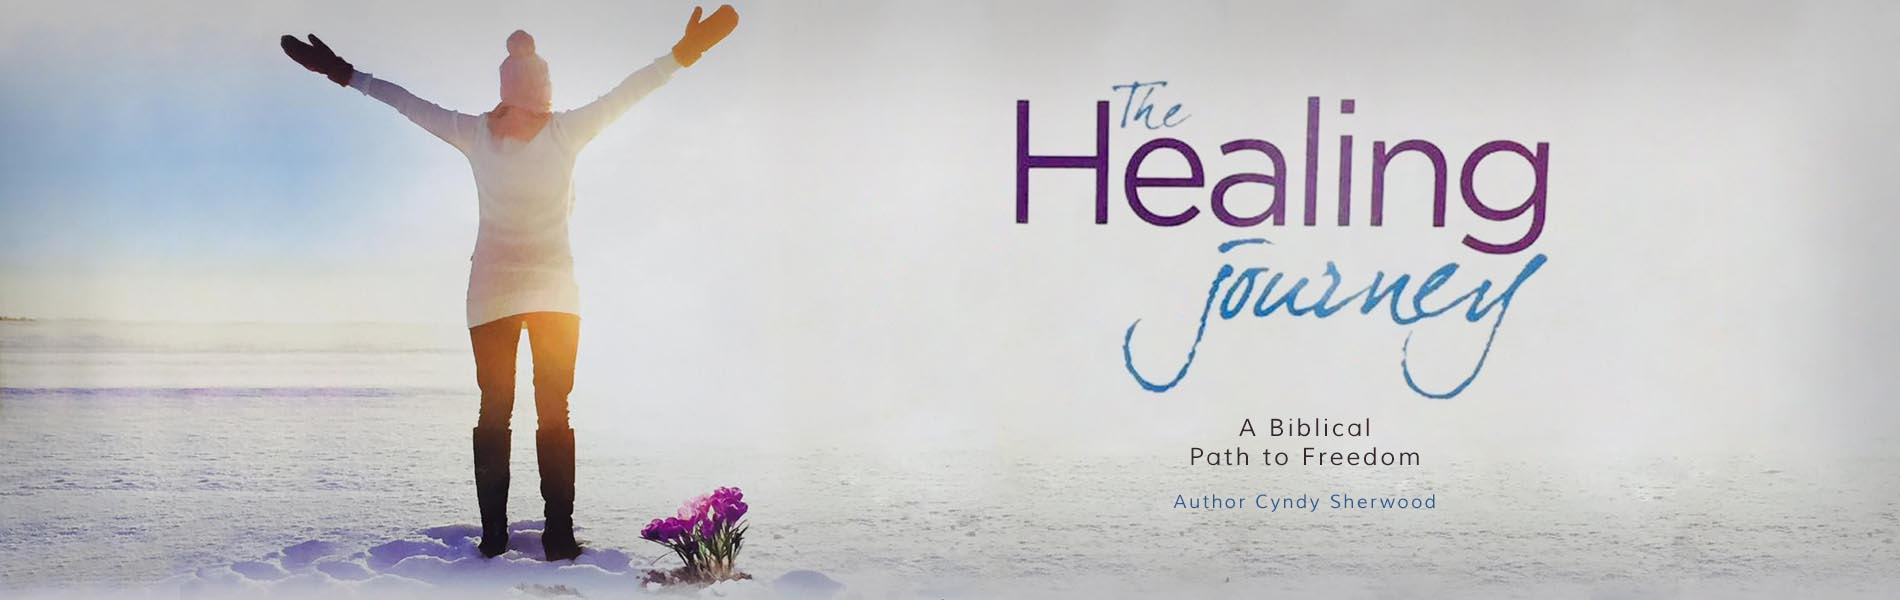 Healing Journey Biblical Path Freedom Allentown